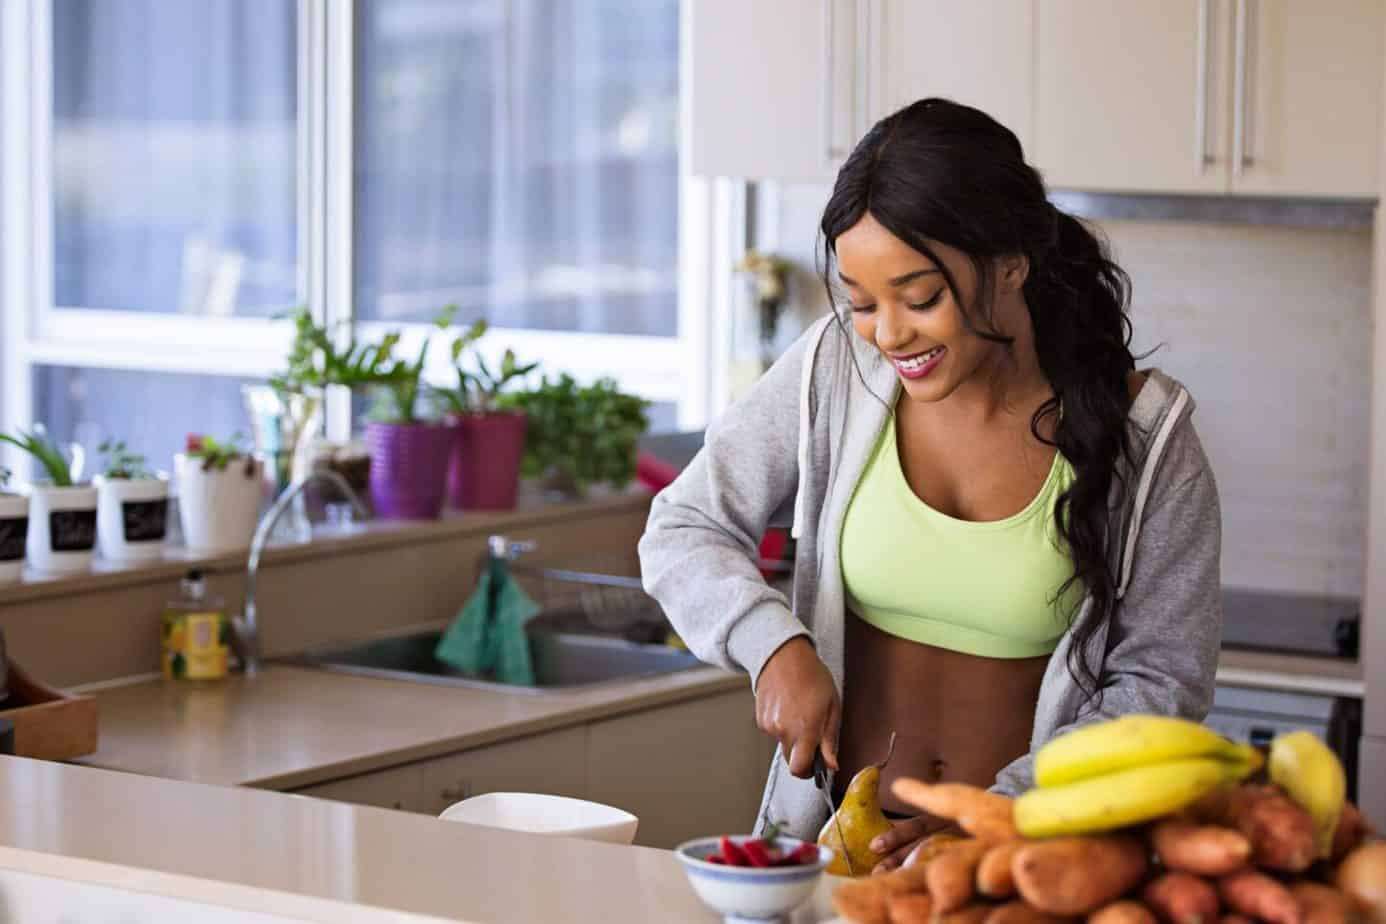 Get fit at home: smiling woman in a sports bra and grey tracksuit jacket cutting a pear in her kitchen with fresh fruit and vegetables in the foreground.